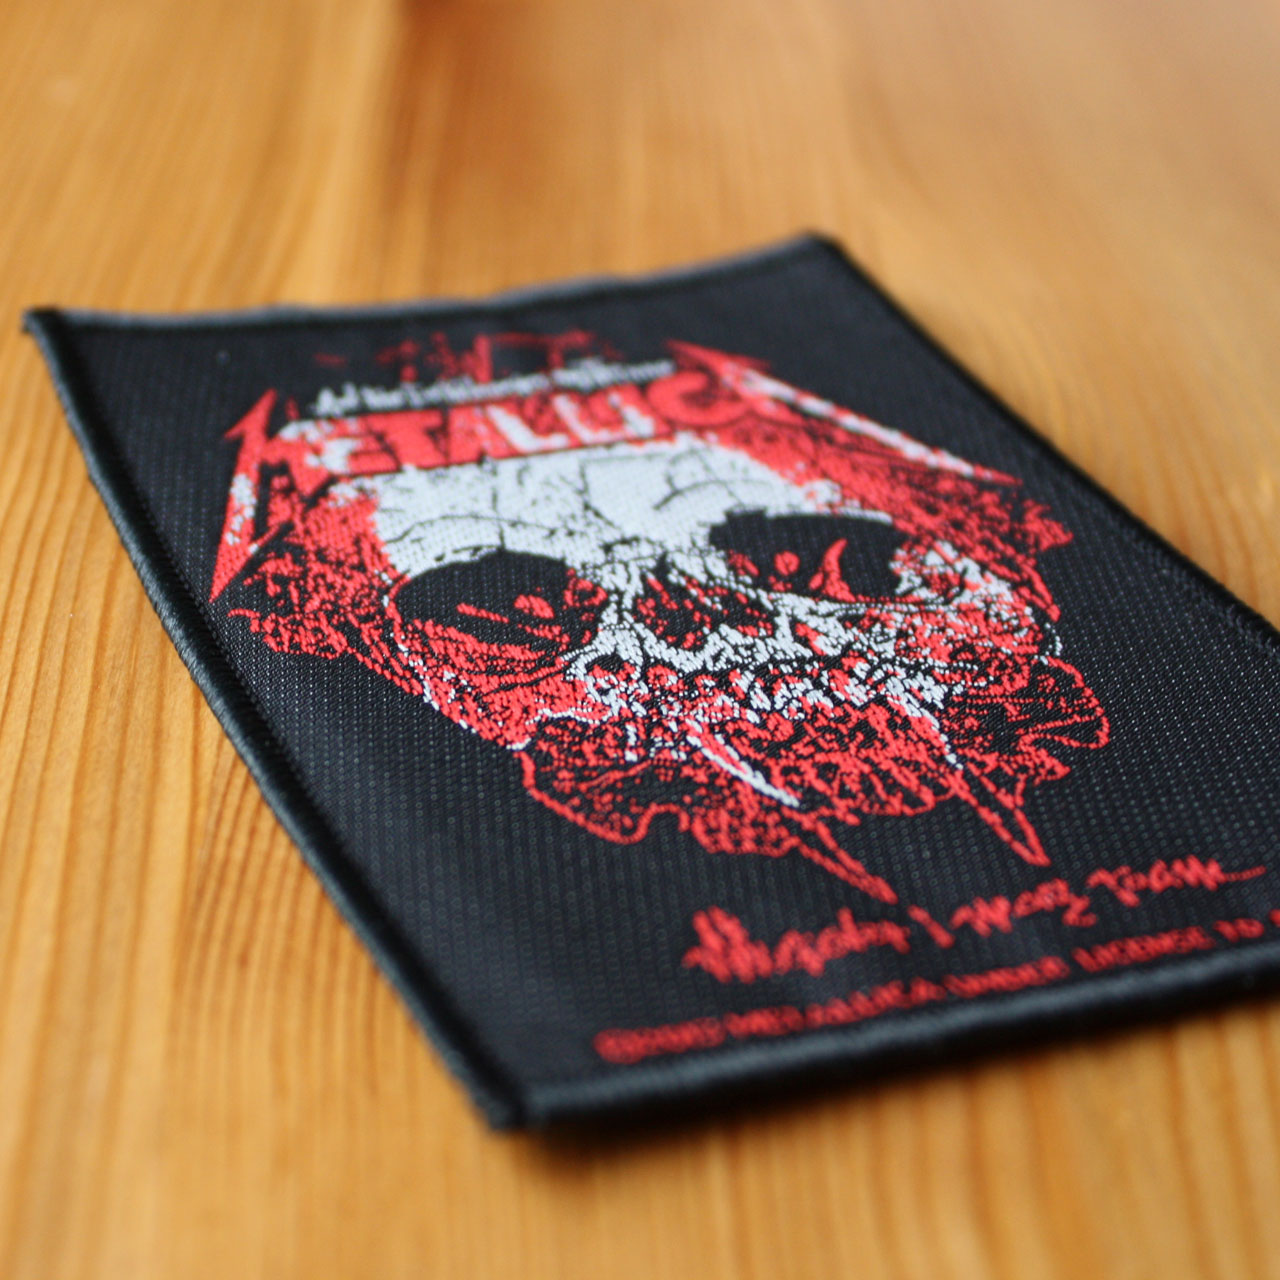 Metallica - Wherever I May Roam (Woven Patch)